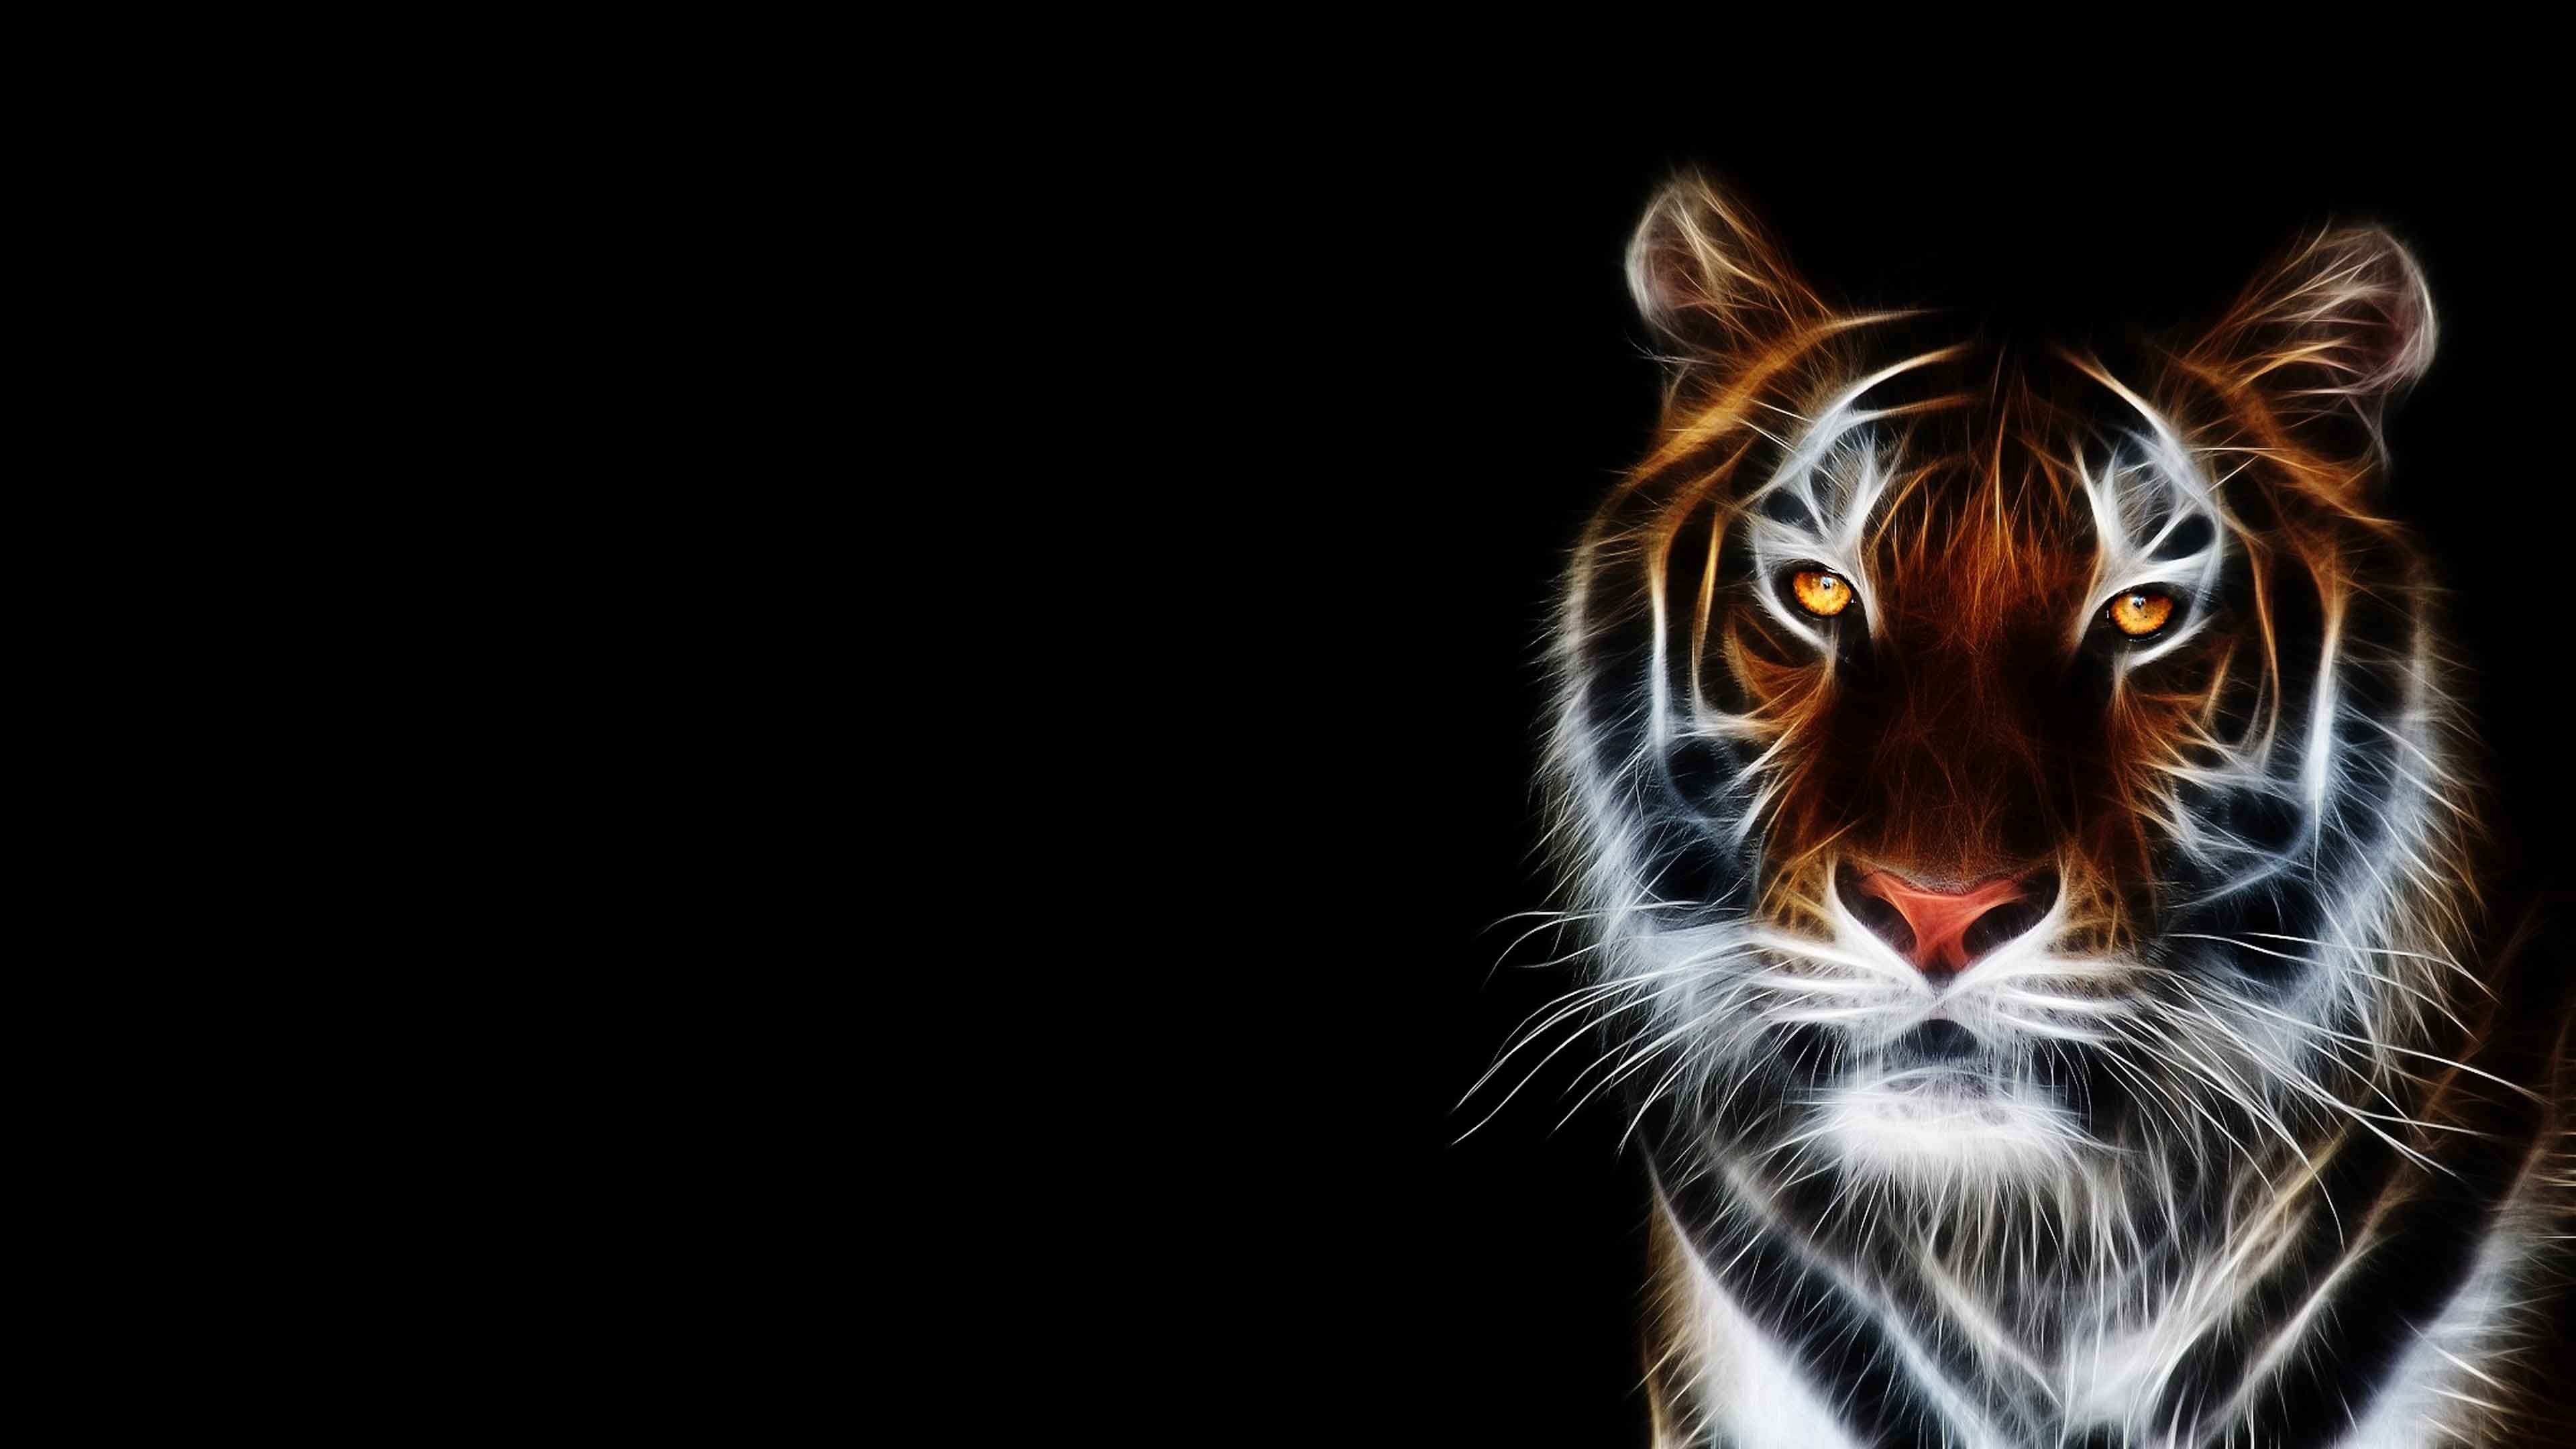 3d Tiger Wallpaper Desktop Animal Wallpaper Tiger Pictures